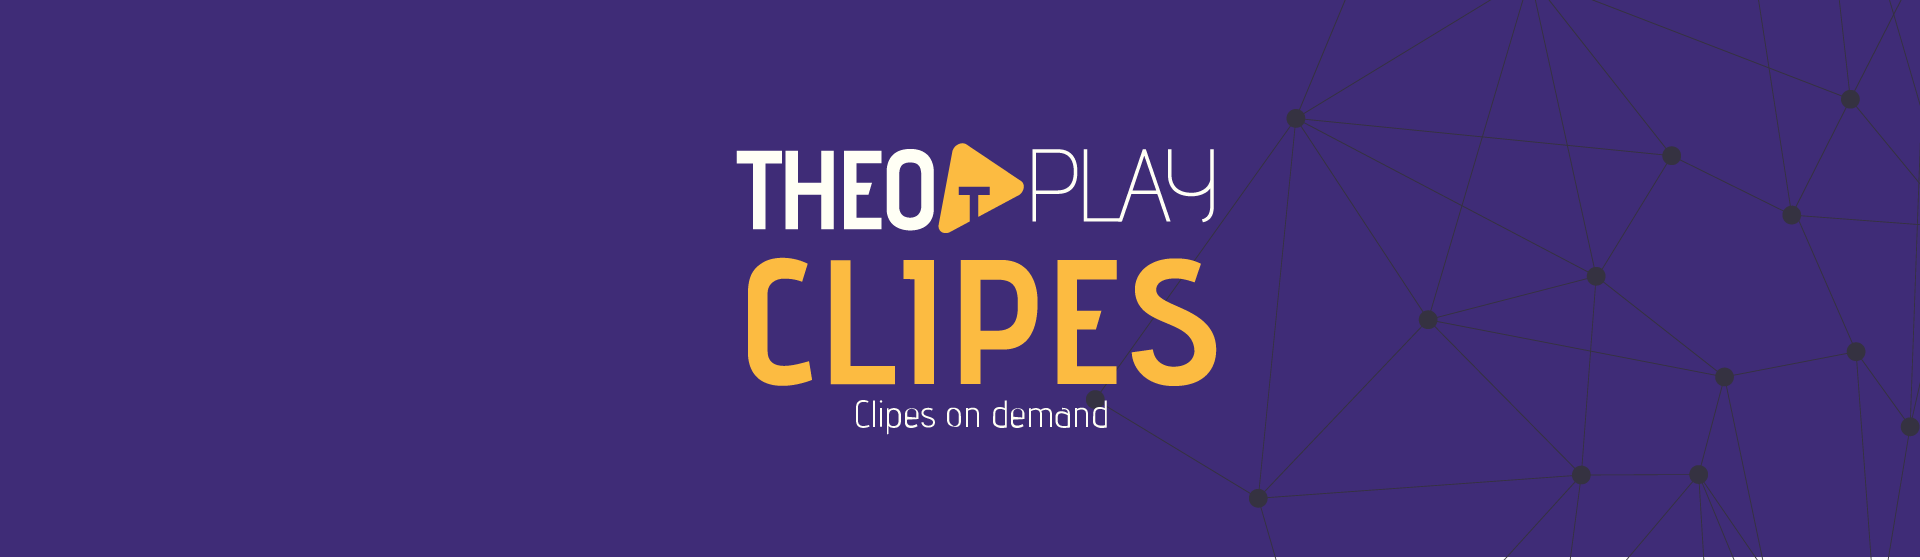 Theo clipes banner 01